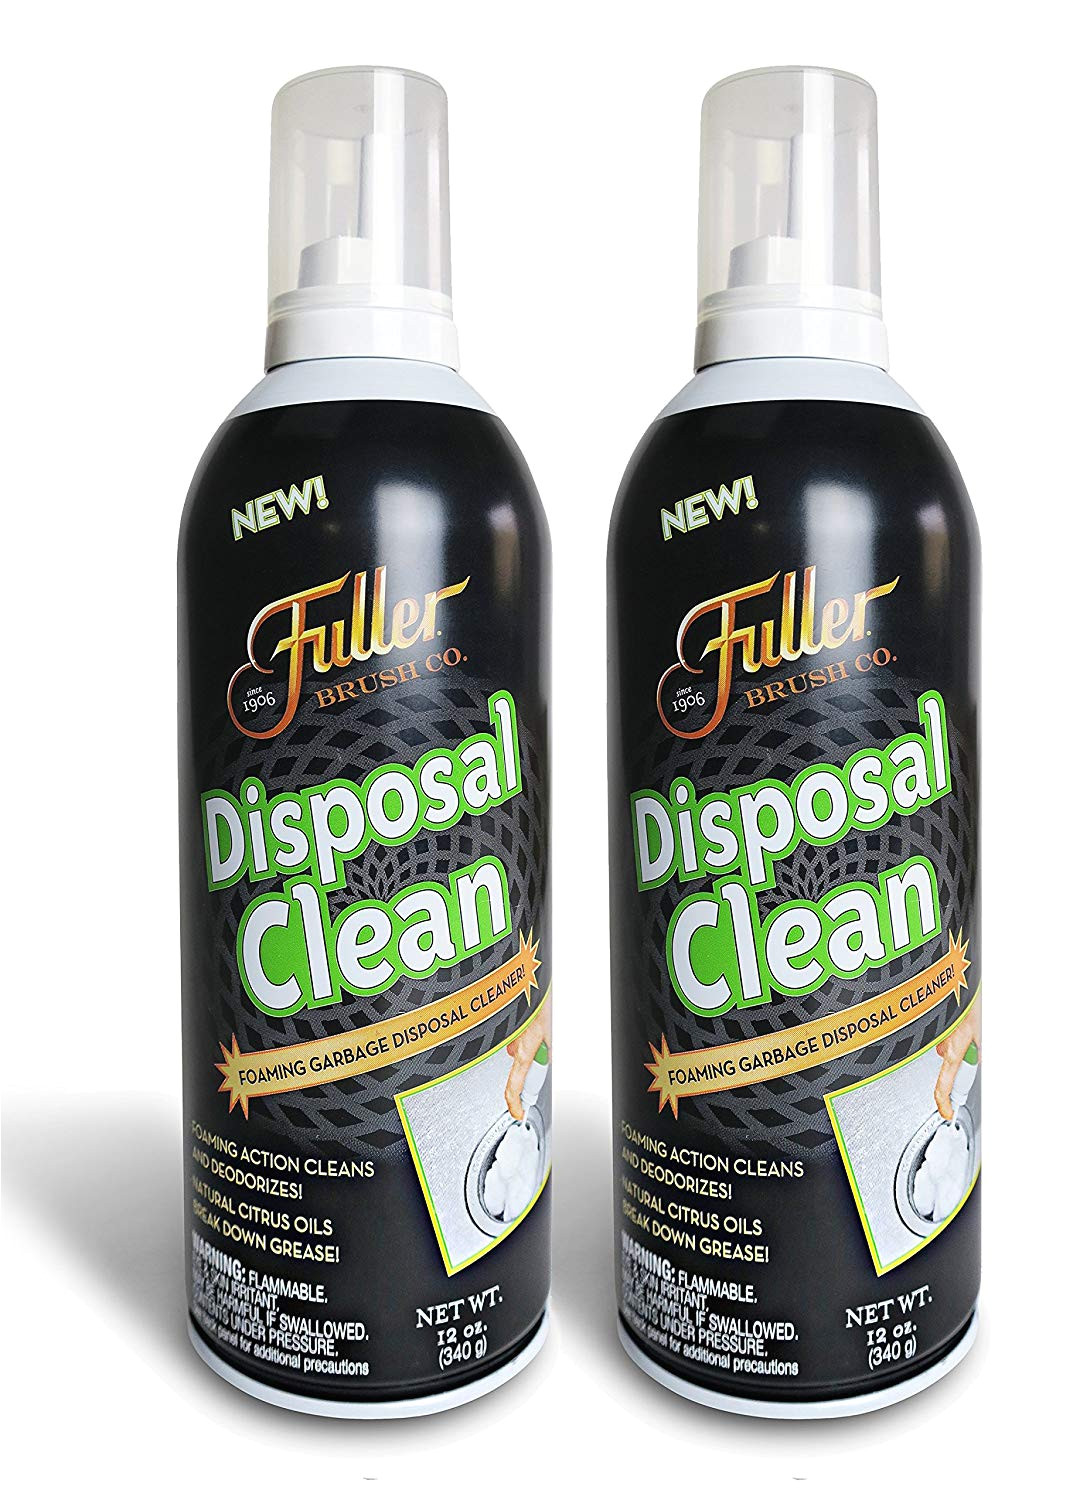 amazon com fuller brush garbage disposal cleaner foaming action fresh citrus scent 12 oz home kitchen